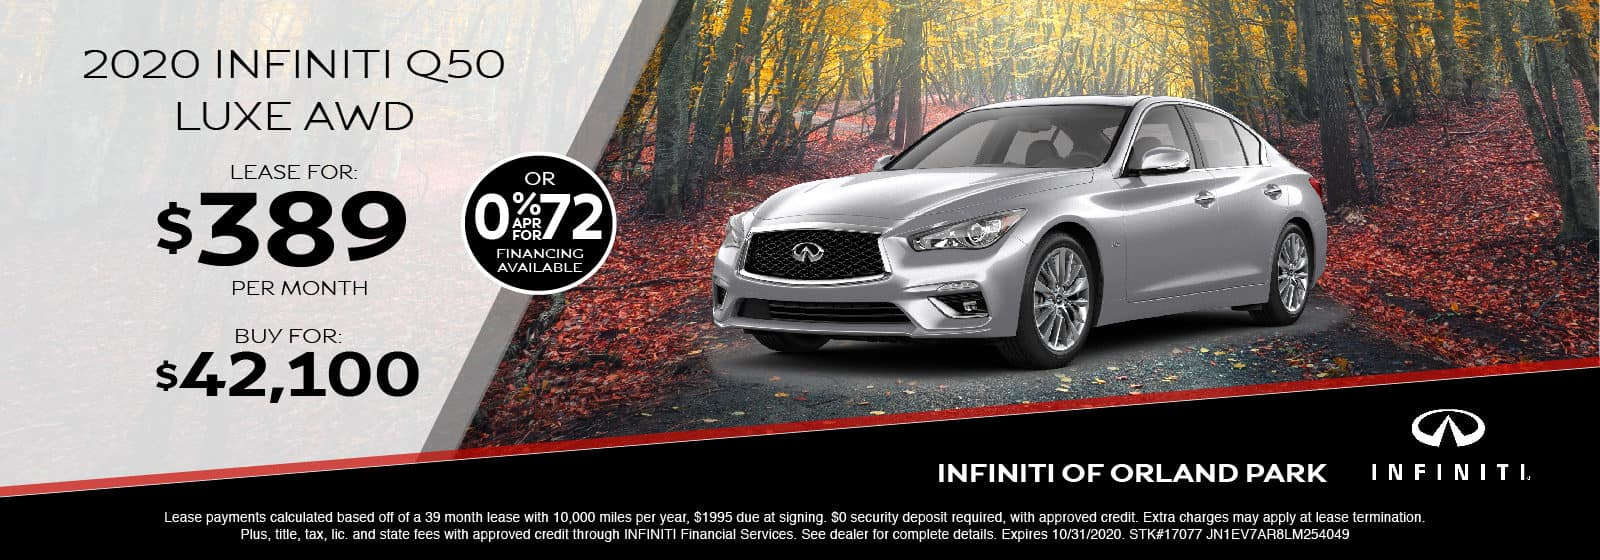 Lease a new 2020 Q50 for $389/month